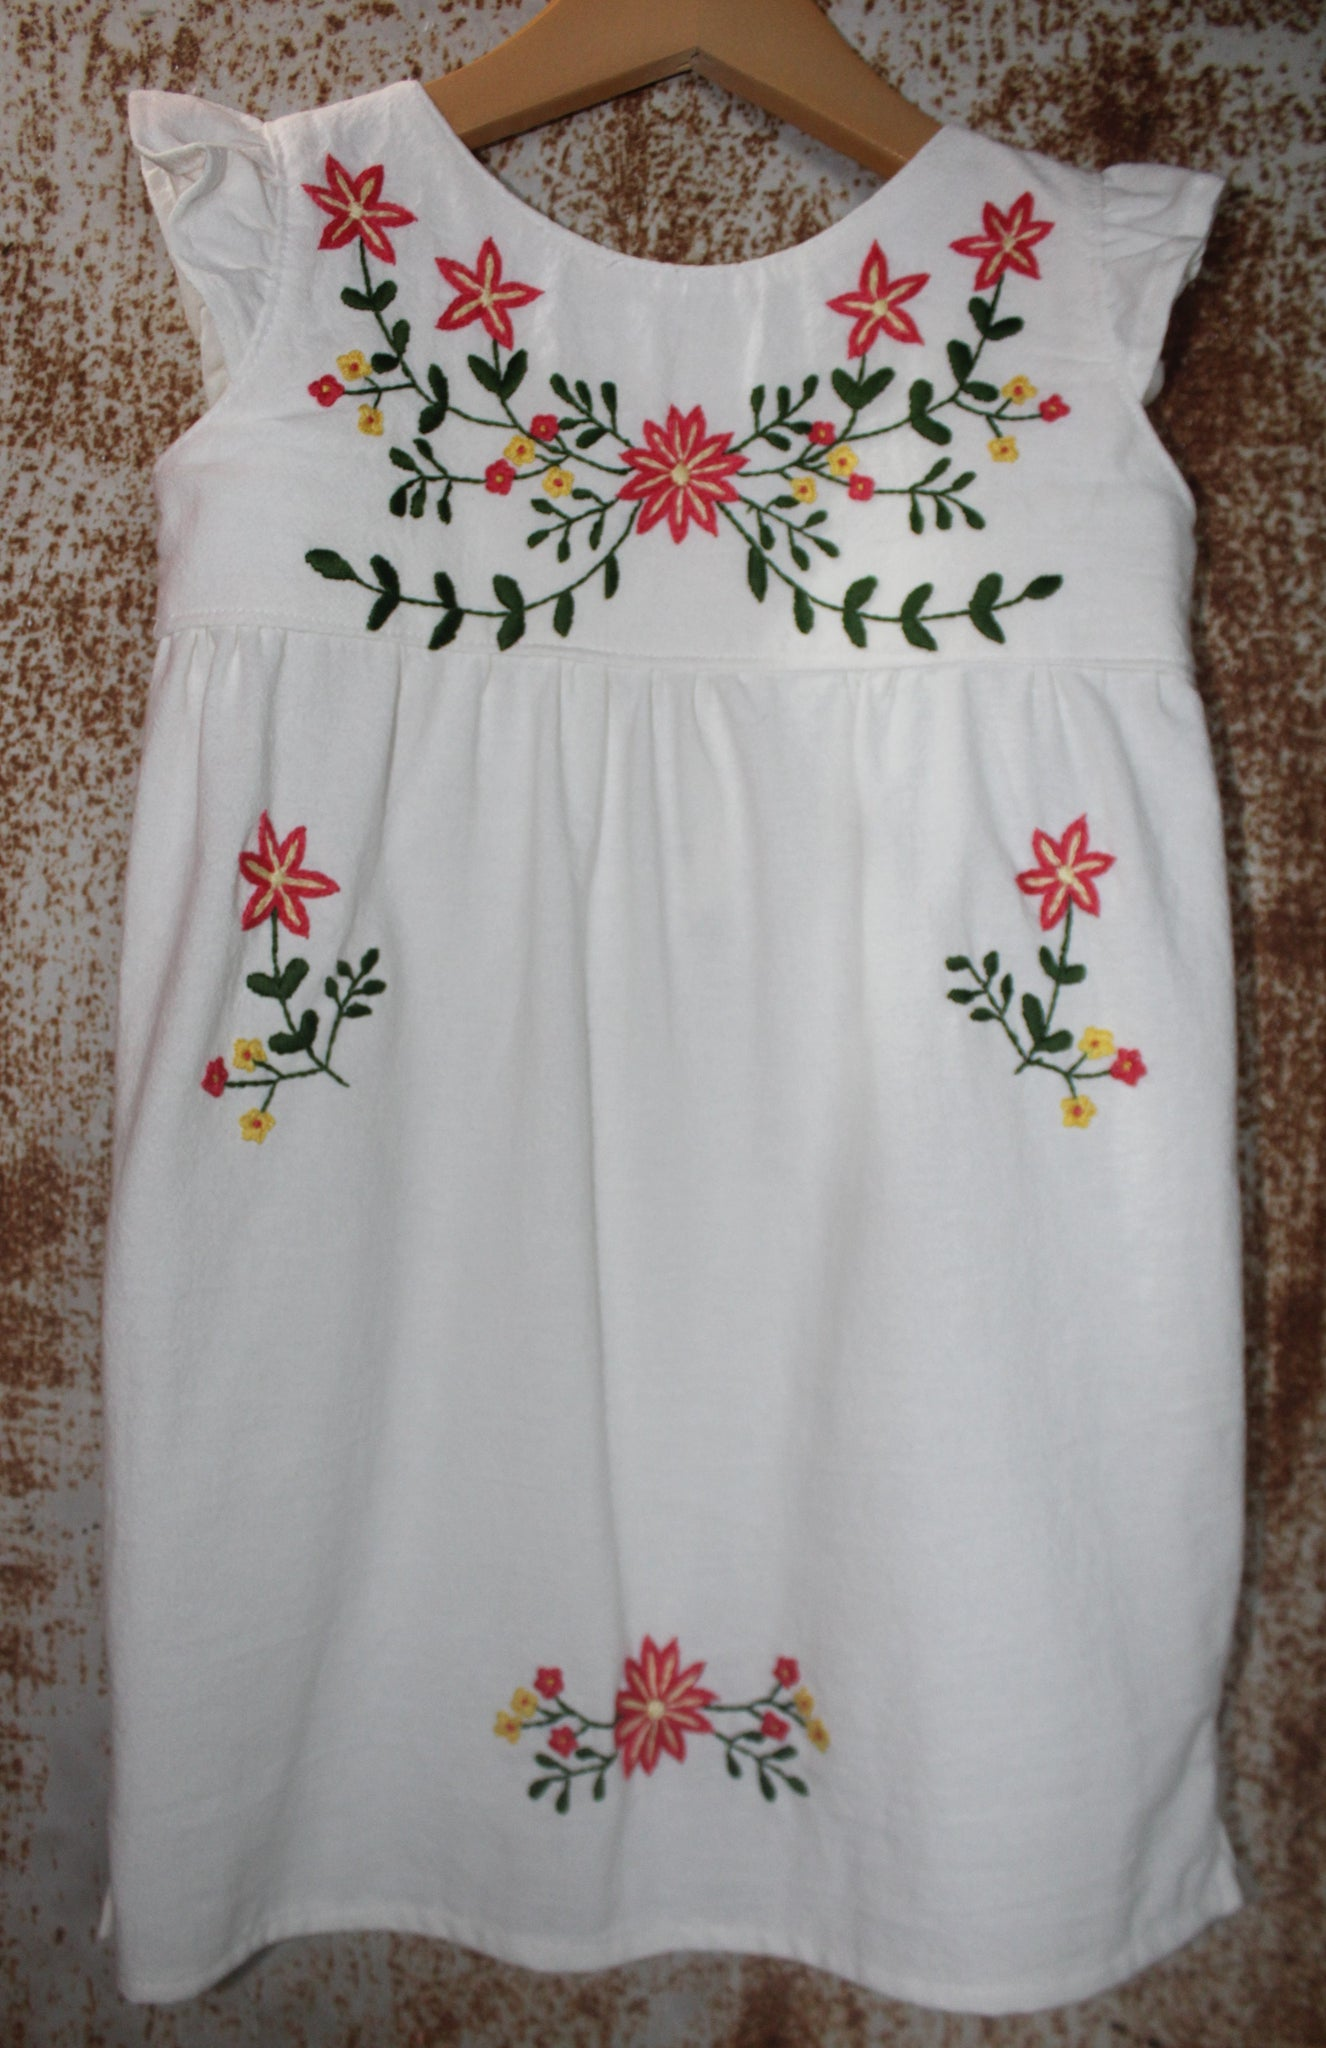 Traditional Oaxacan Tunic - Local Unbleached Cotton: Pink Flowers Detail - Size 5T